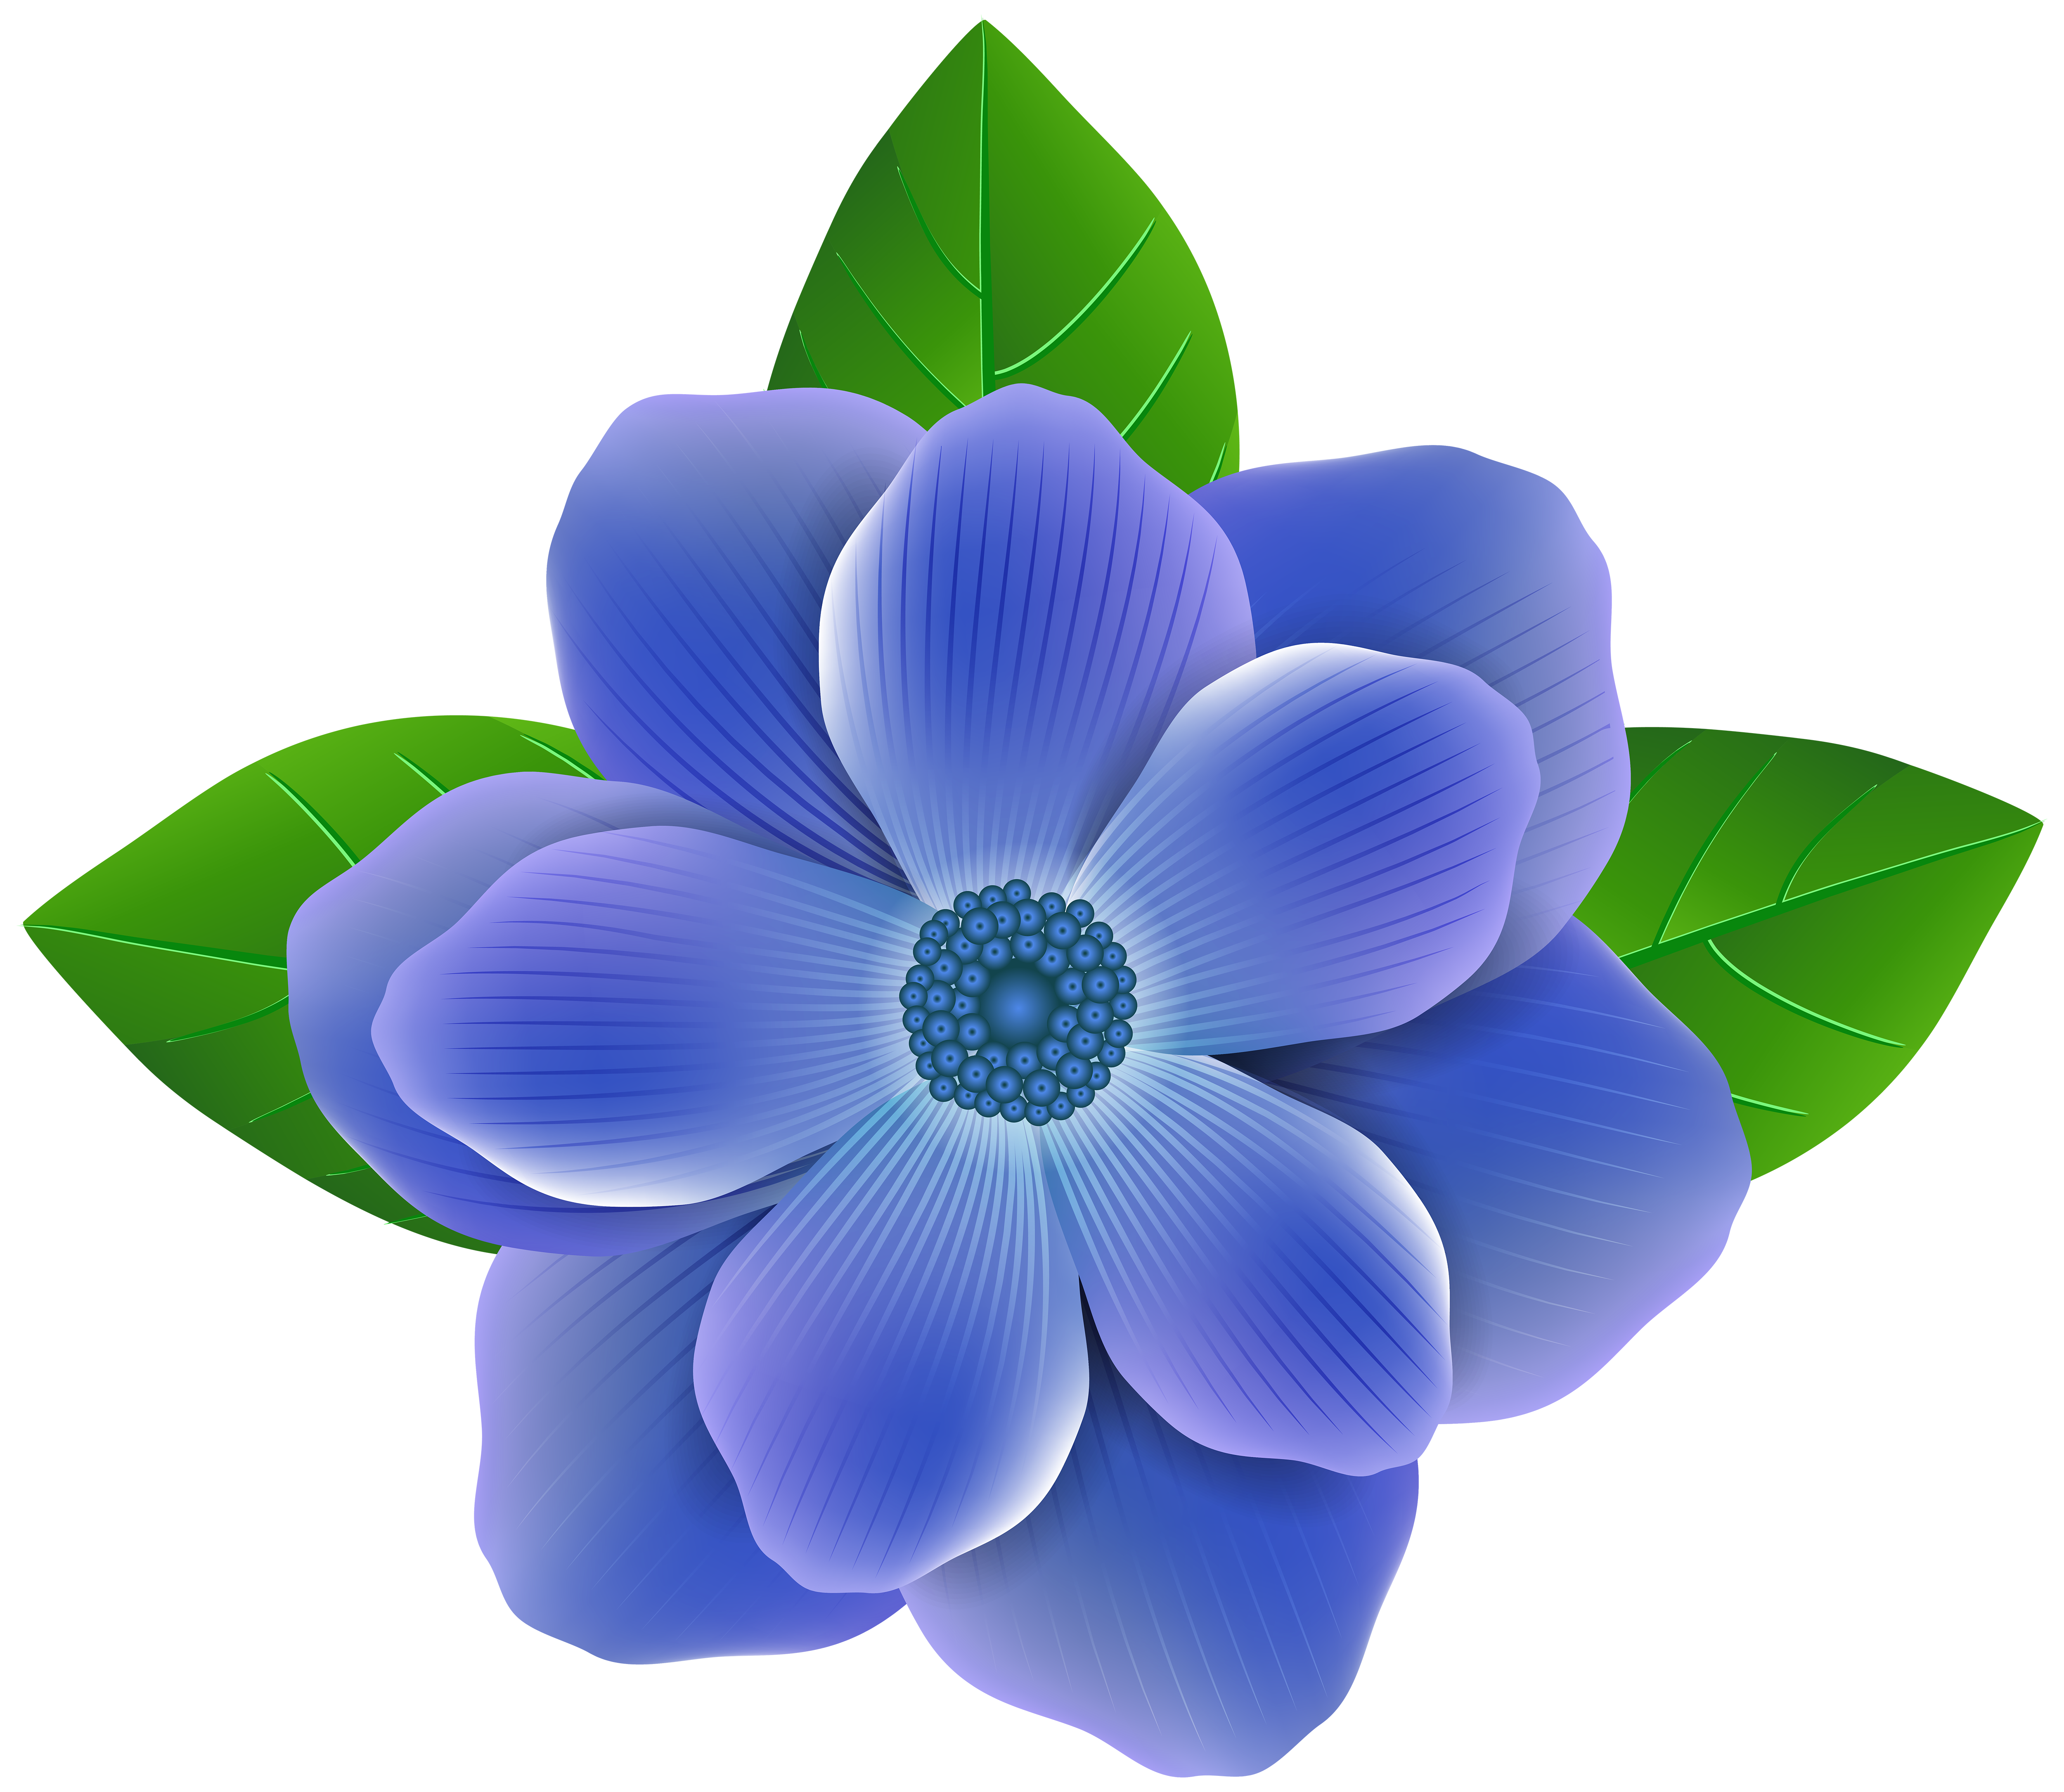 Blue flower png. Clip art image gallery